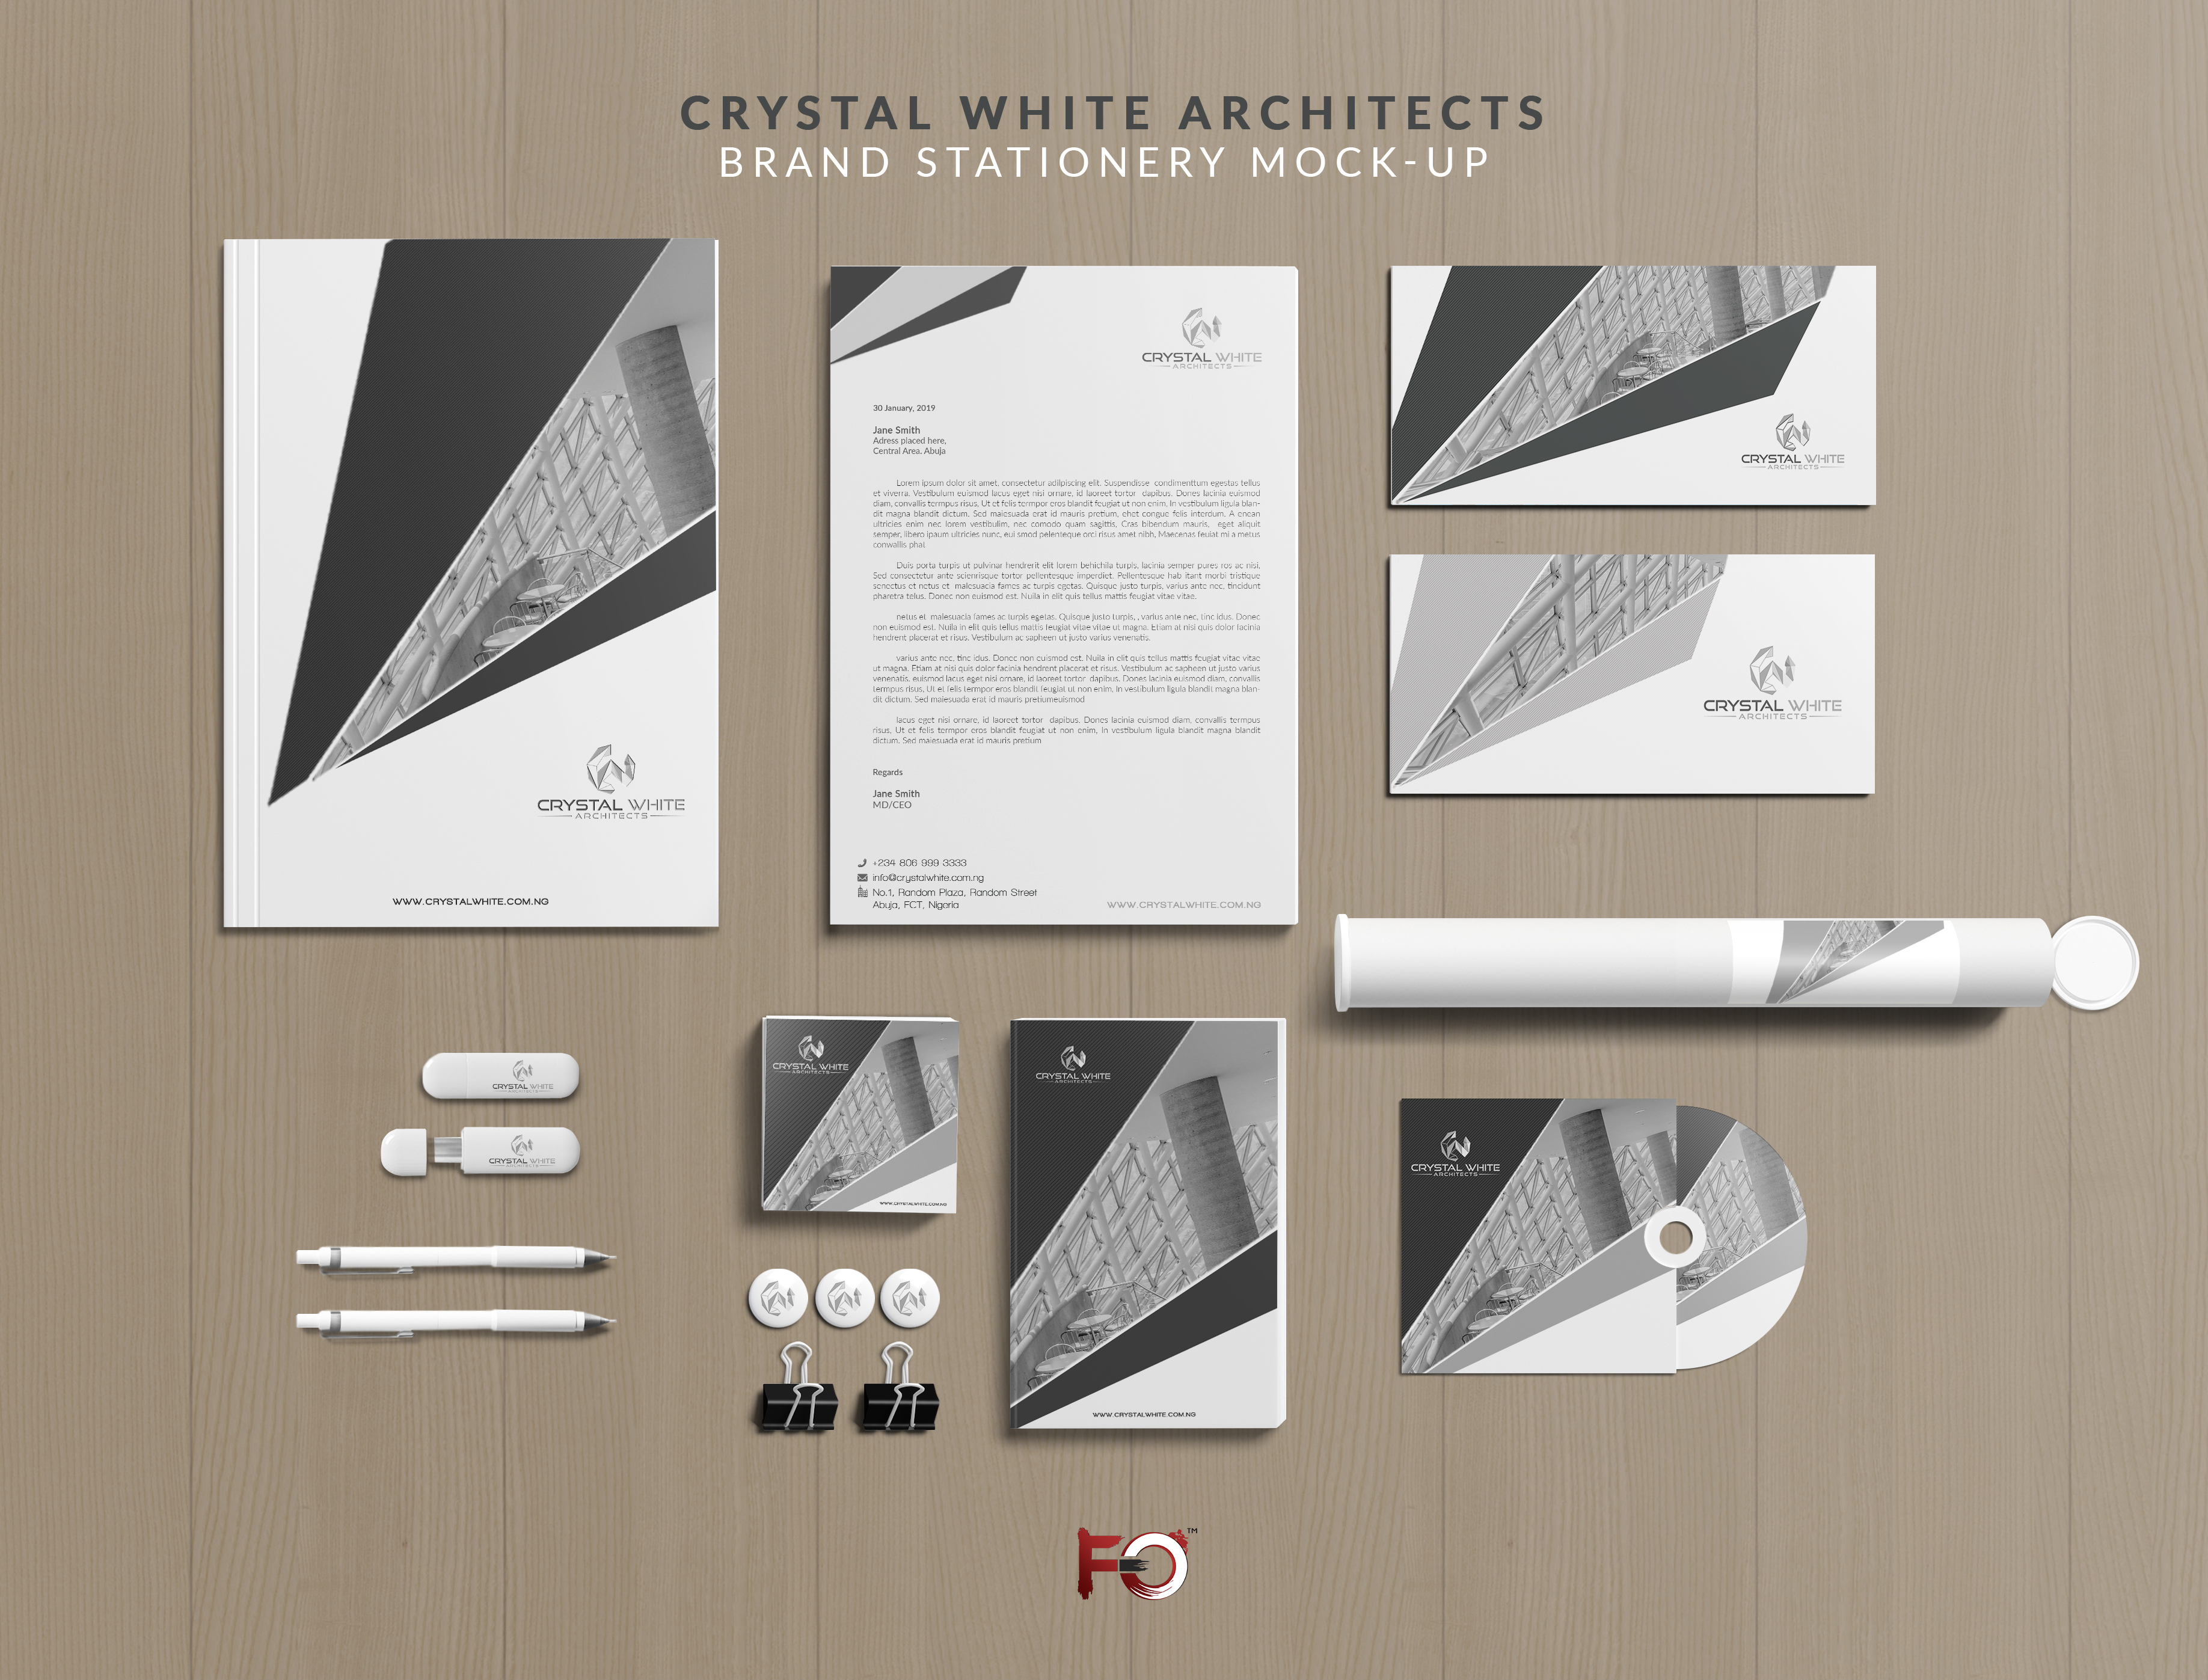 Crystal White Architects